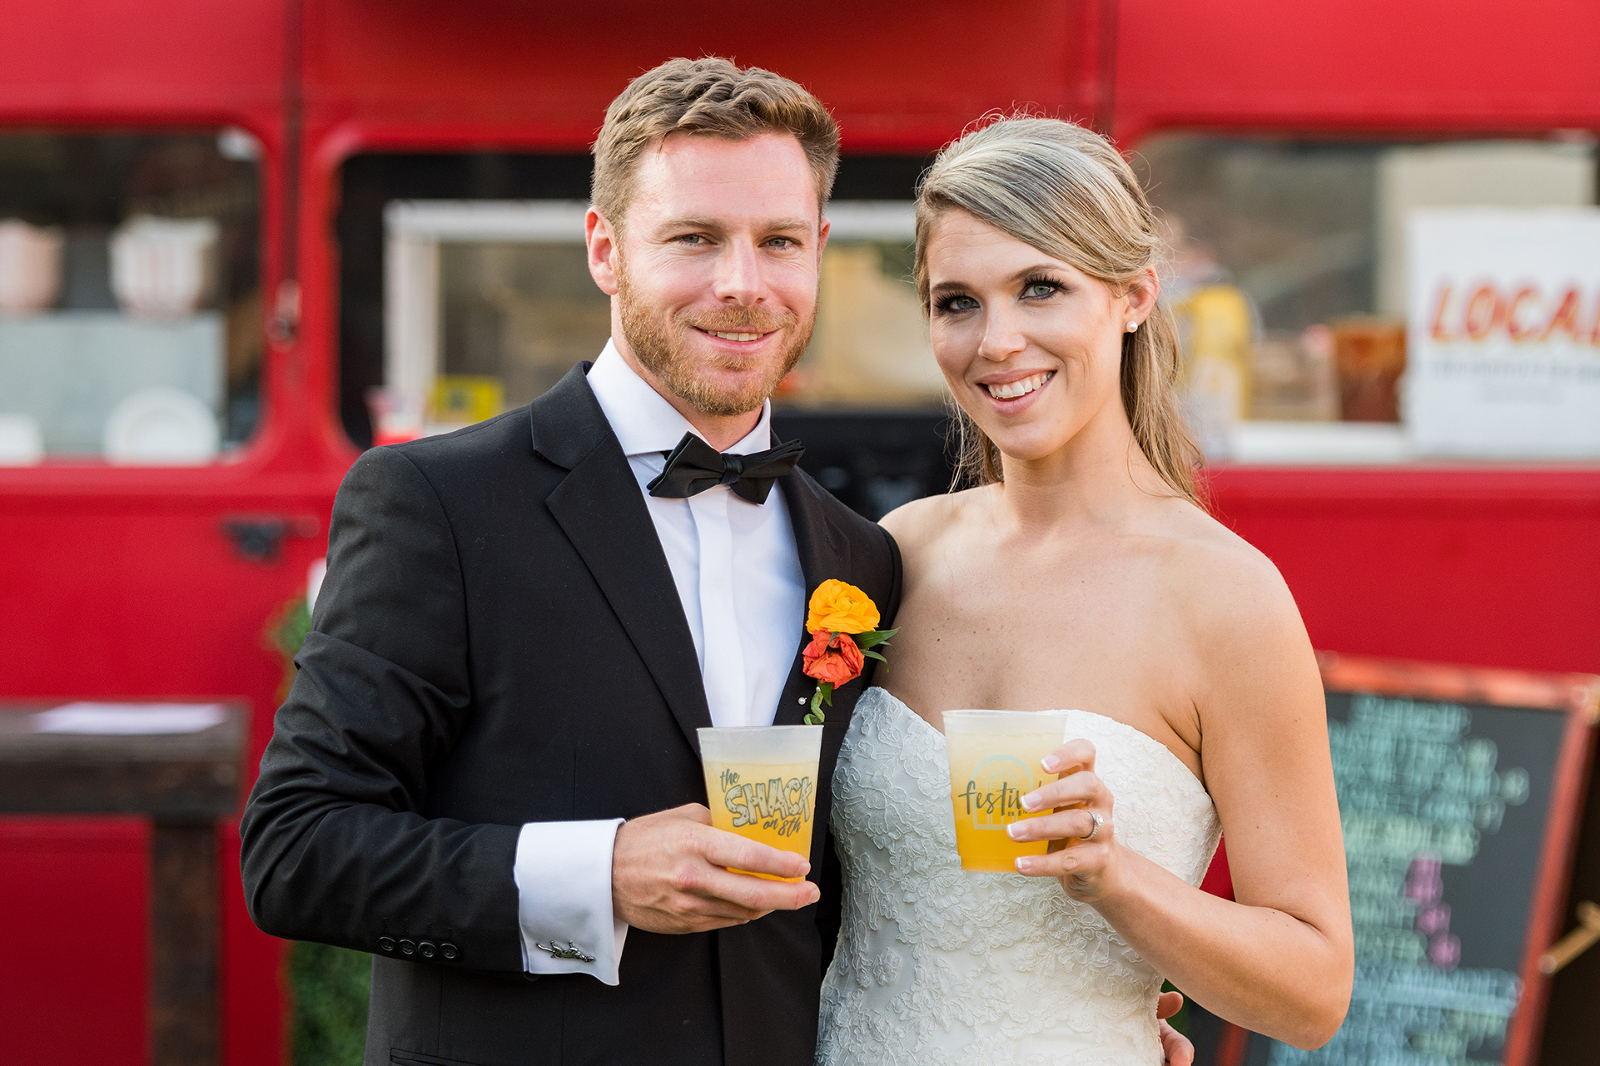 Food Truck Bride and Groom